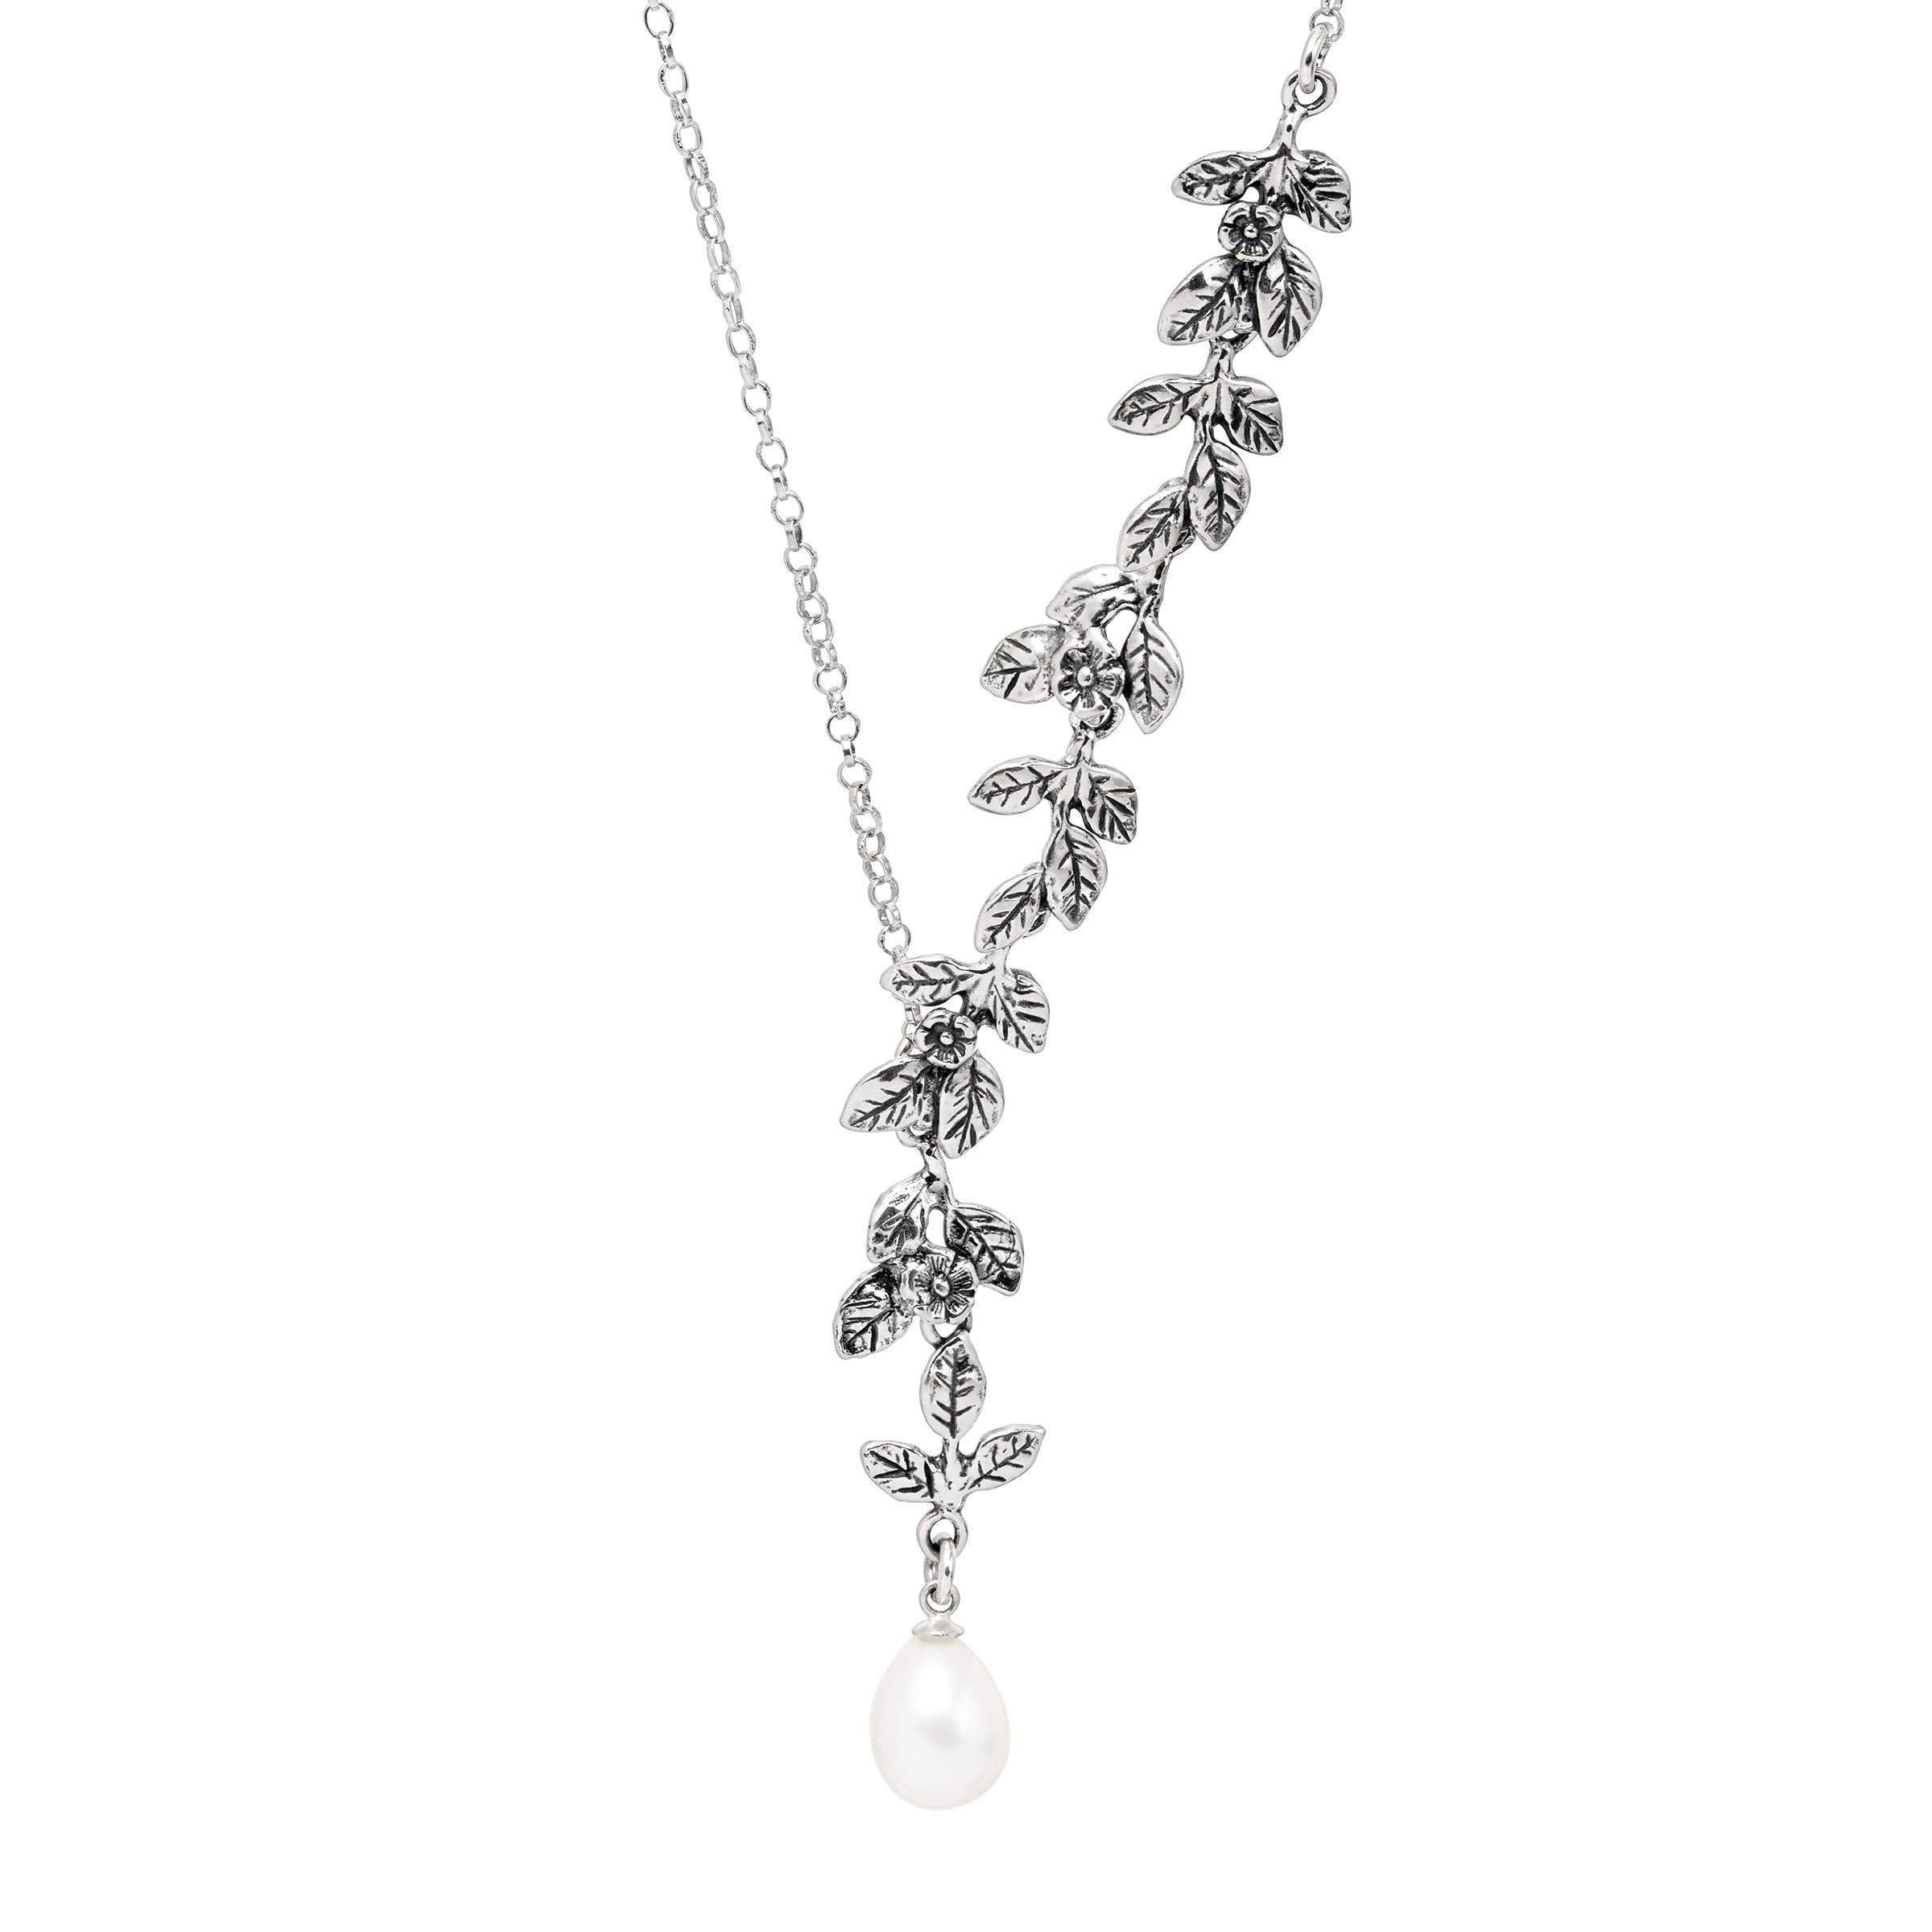 Silpada 'Winds of Change' 7 mm Freshwater Cultured Pearl & Cascading Vine Necklace in Sterling Silver